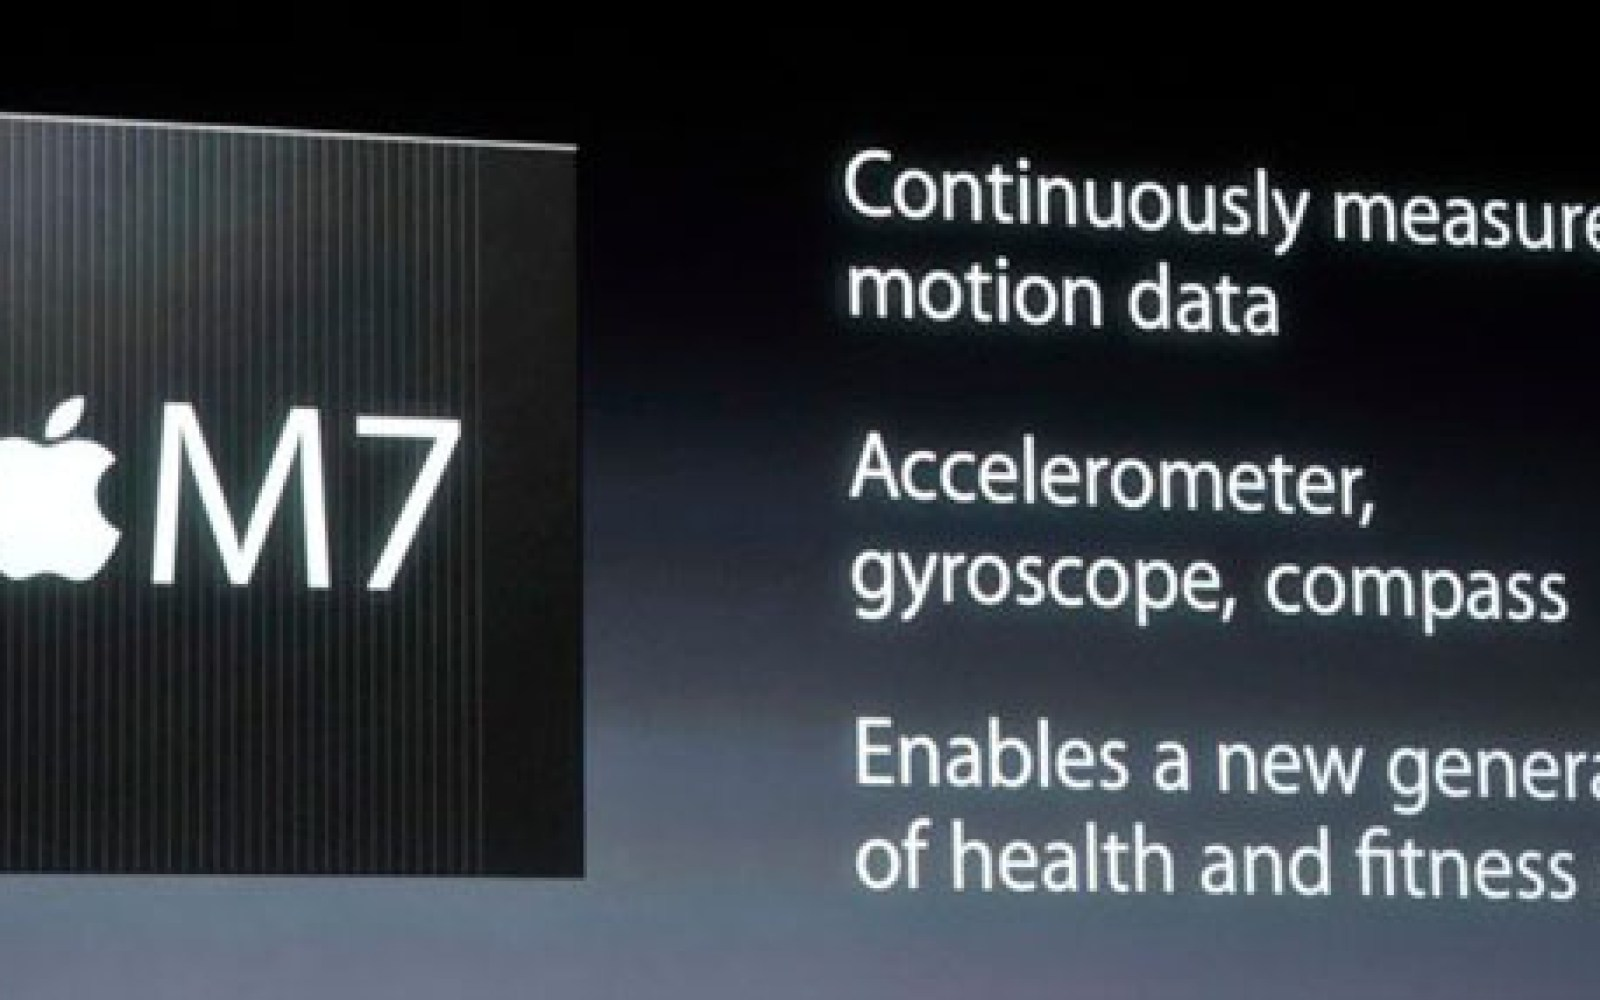 More M7 details: data storage, battery life, Android motion coprocessor adoption